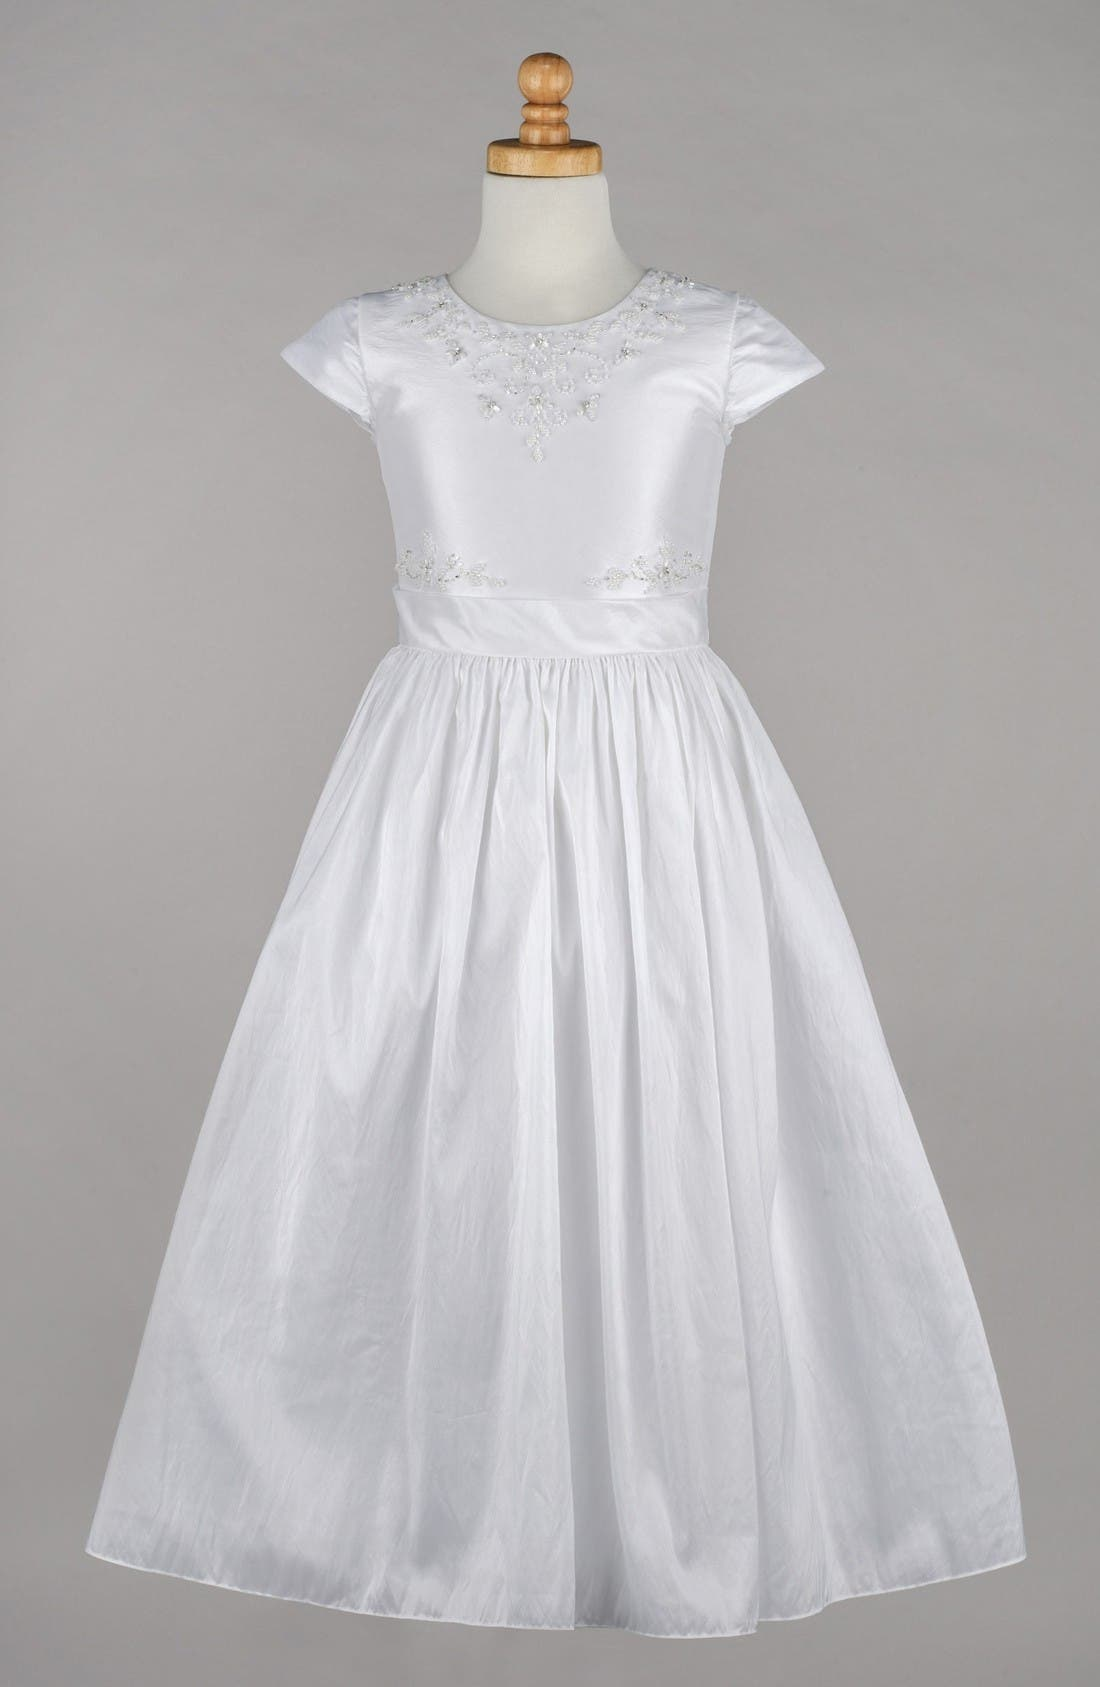 Lauren Marie Beaded Taffeta First Communion Dress (Little Girls & Big Girls)